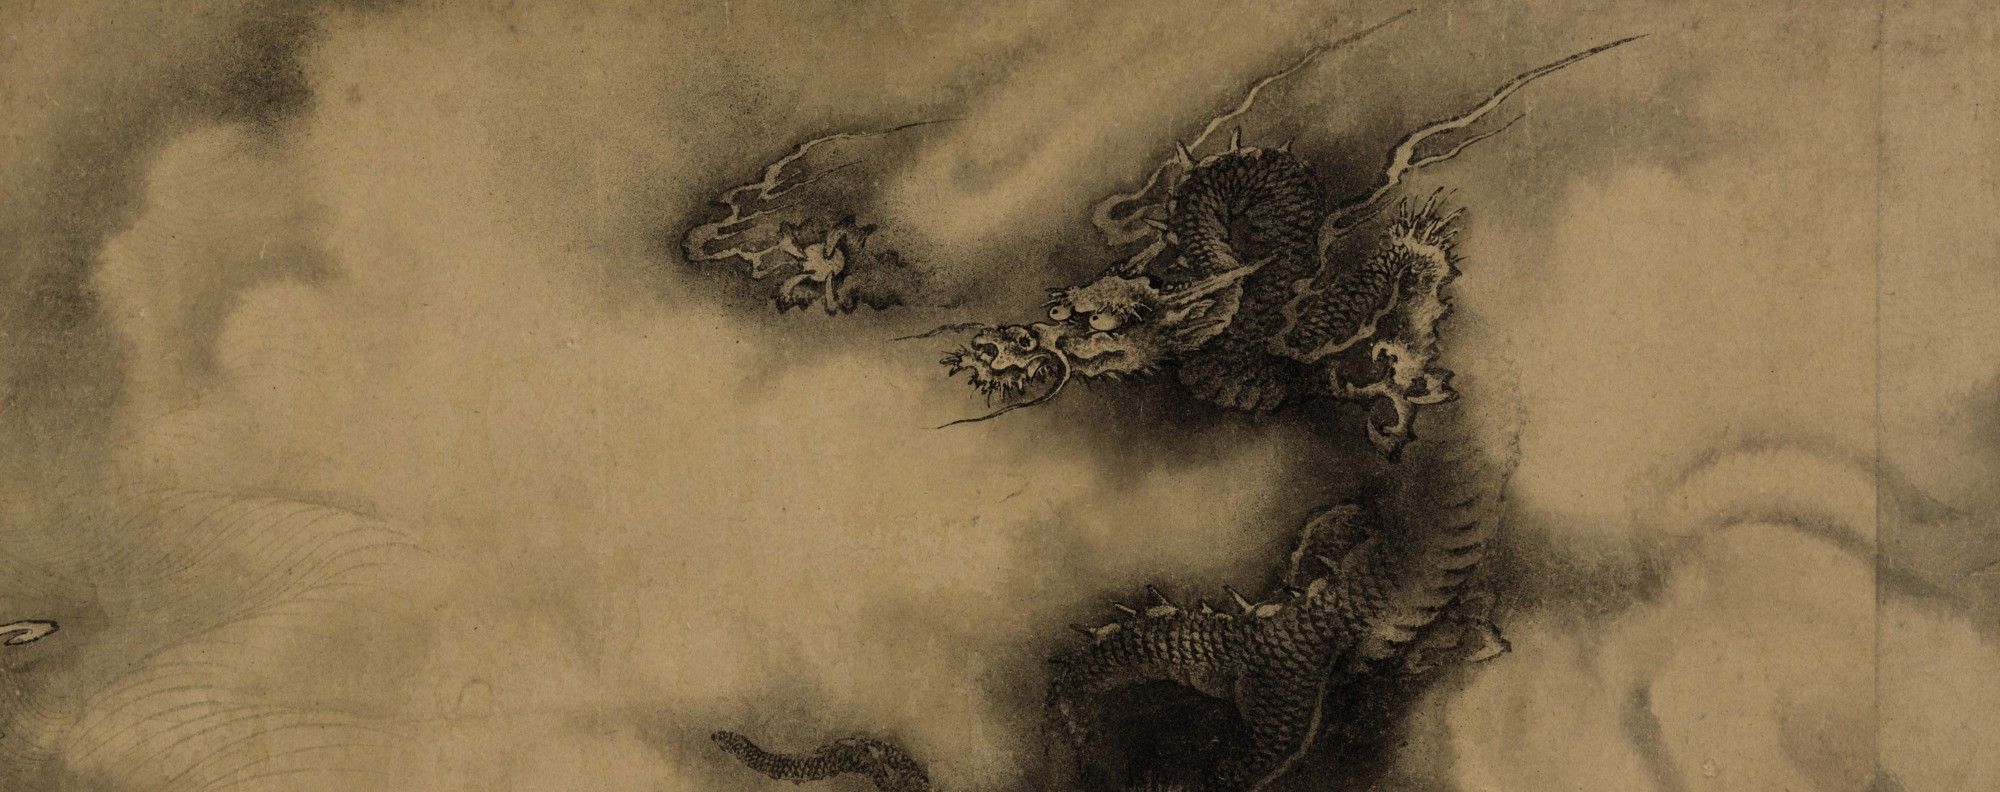 Six Dragons, a 13th-century painting by Chen Rong, which went for US$49 million at auction last year. Picture: Christie's